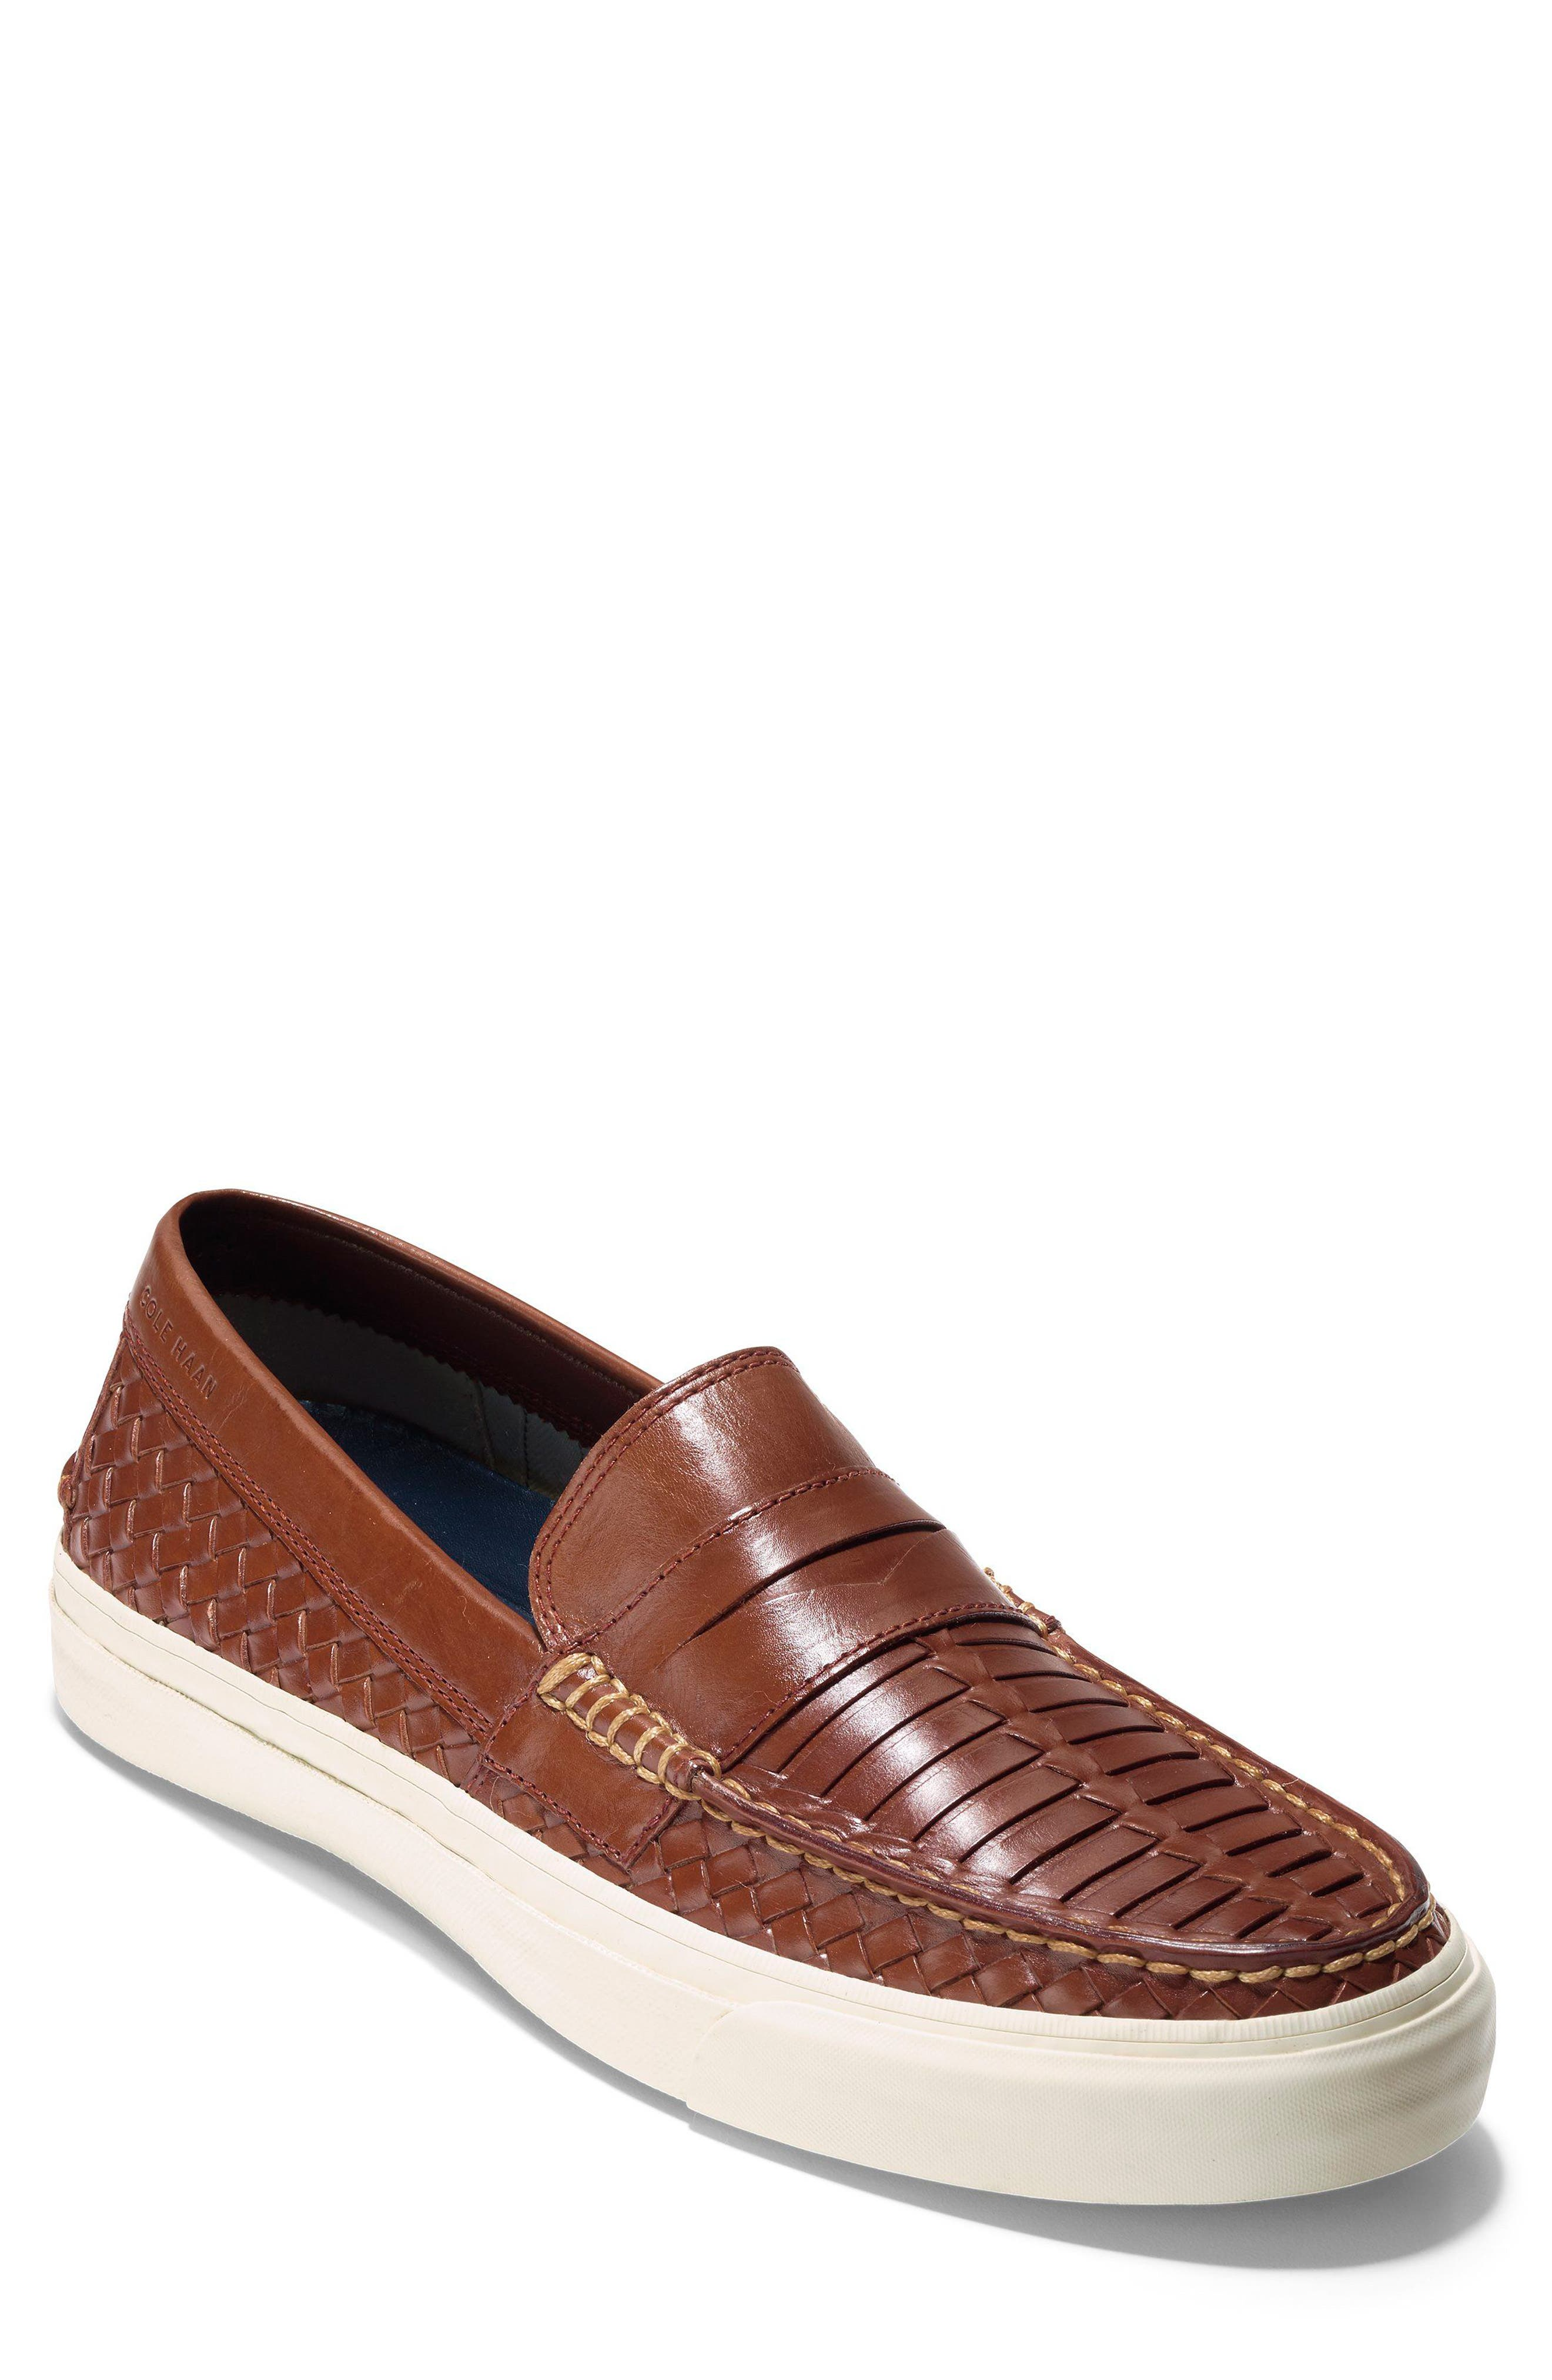 Pinch Weekend LX Huarache Loafer,                         Main,                         color, WOODBURY WOVEN BURNISH